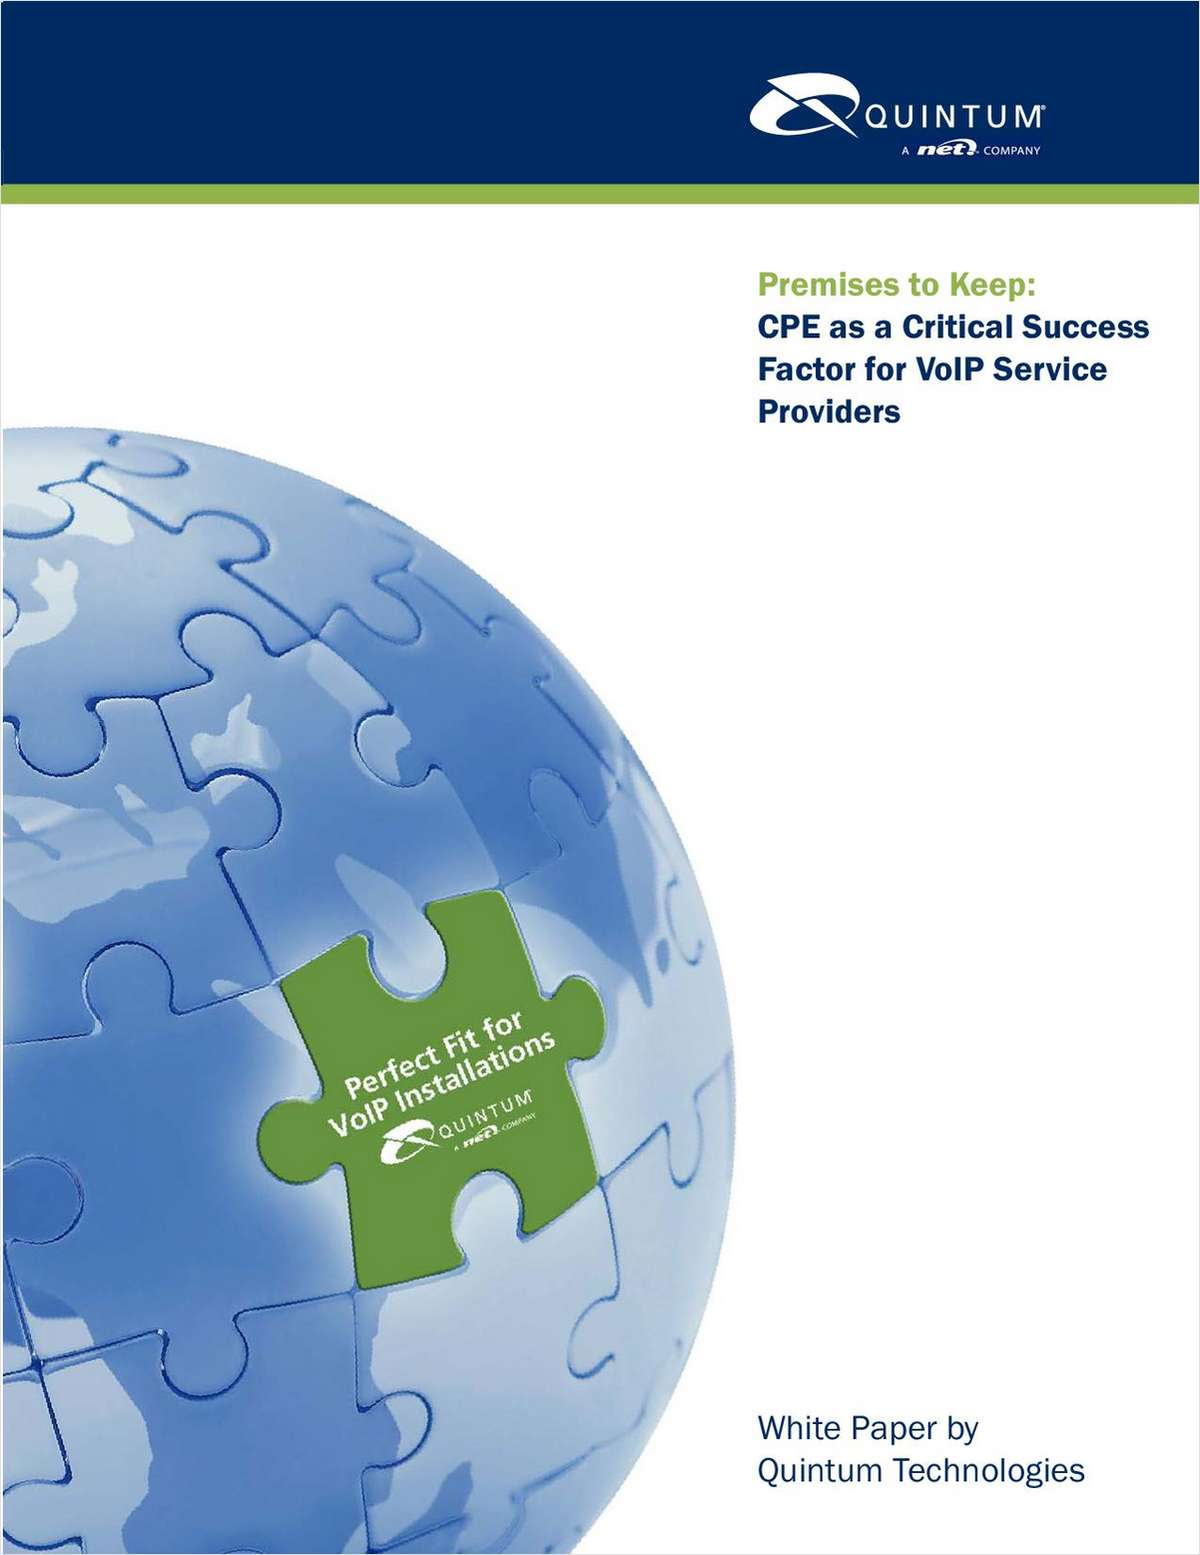 Premises to Keep: CPE as a Critical Success Factor for VoIP Service Providers